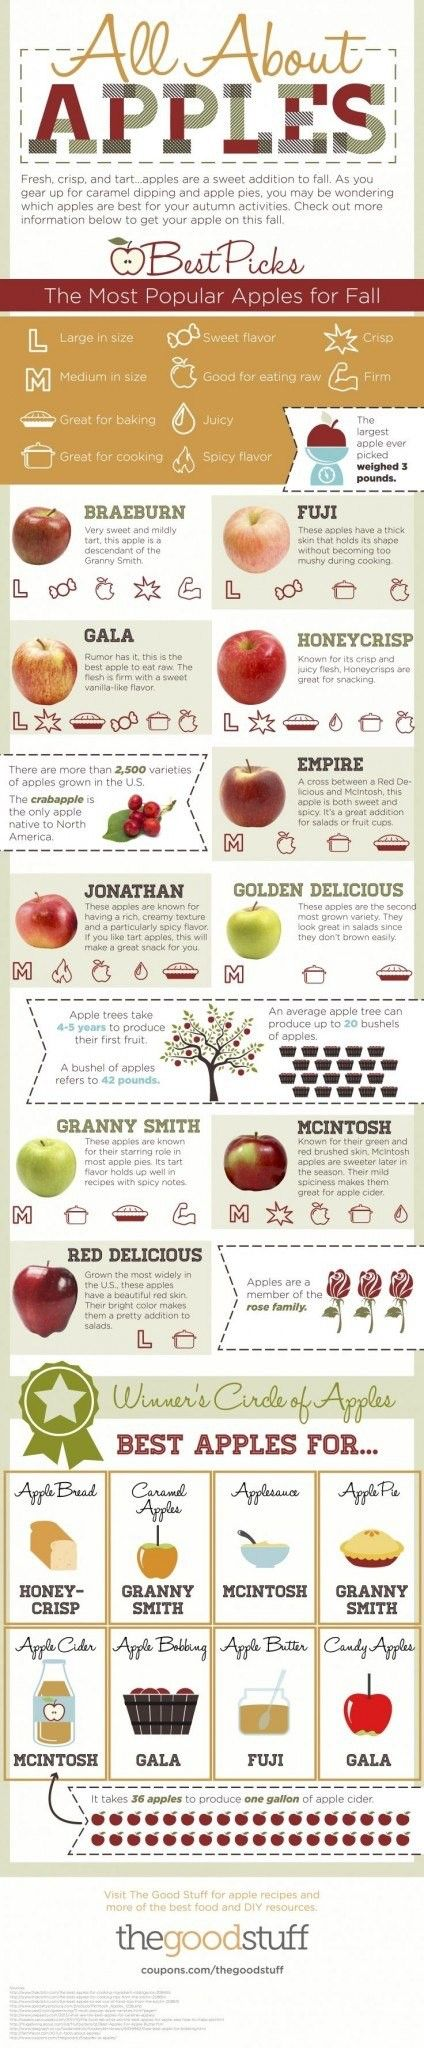 apples-fact-sheet